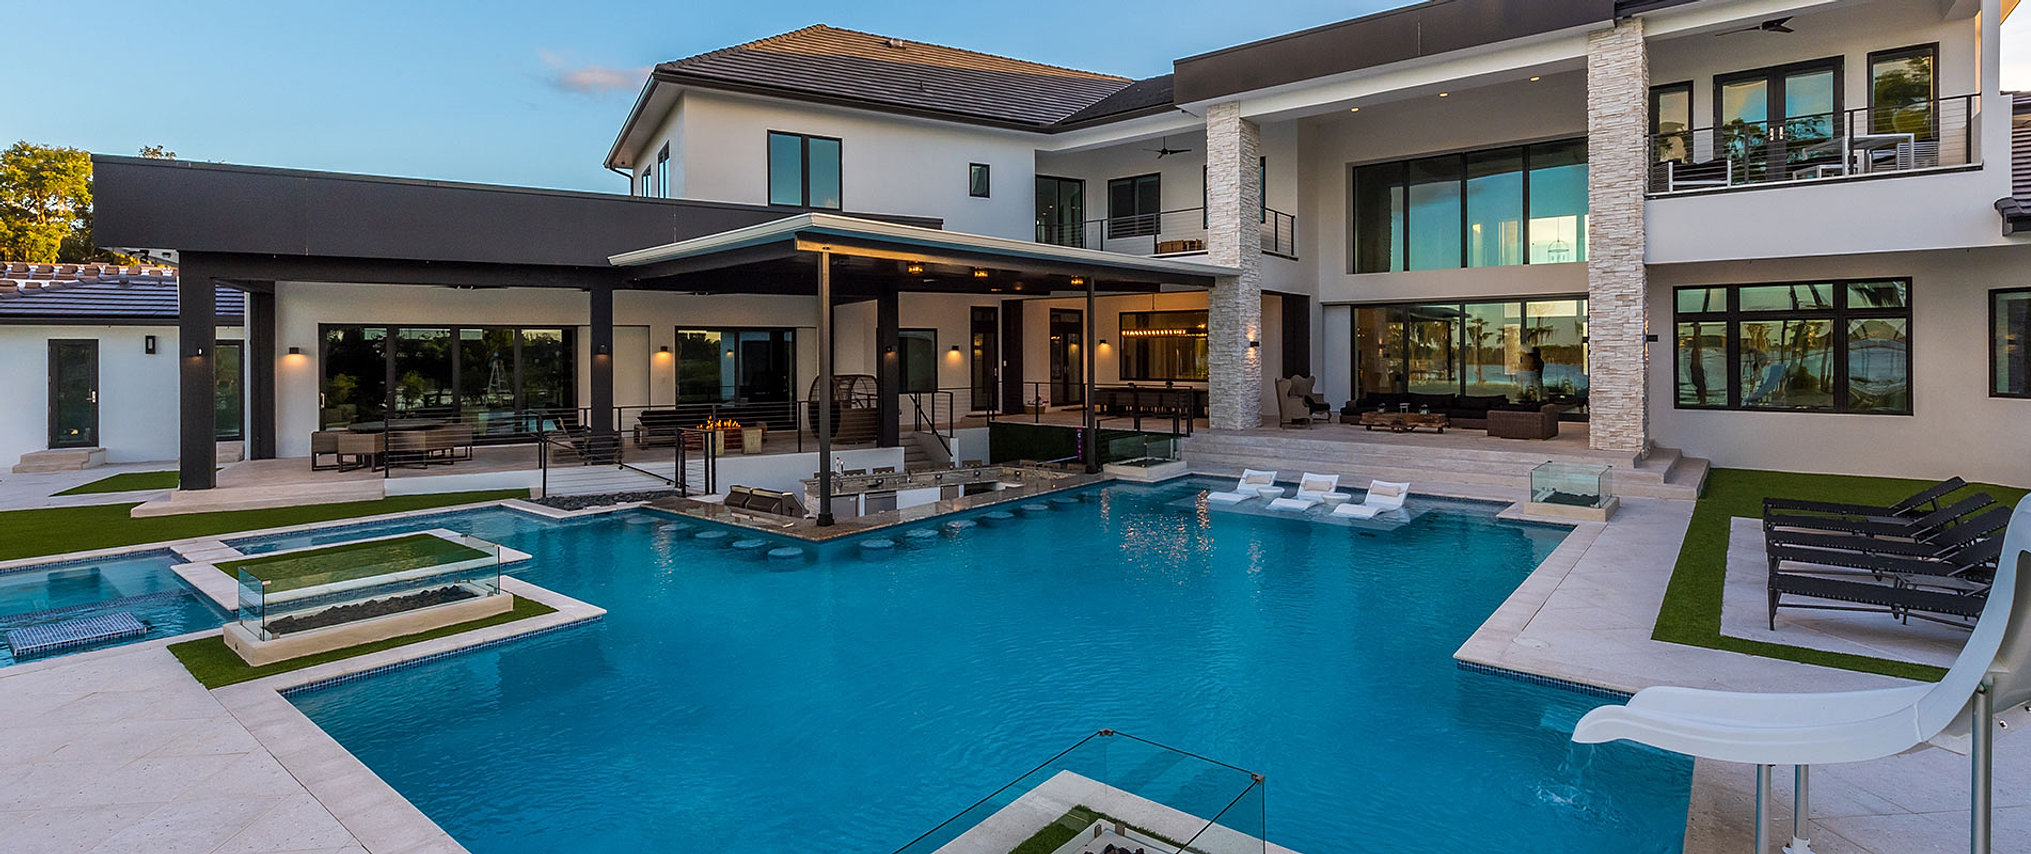 Custom Luxury Pools In Central Florida By Southern Pool